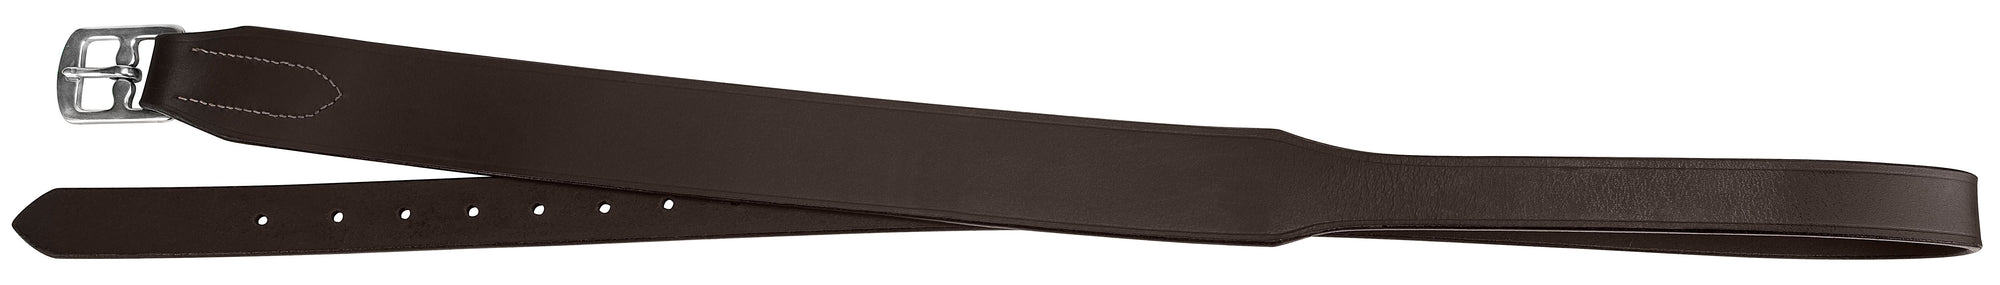 Henri de Rivel X-Wide Stirrup Leathers_5392